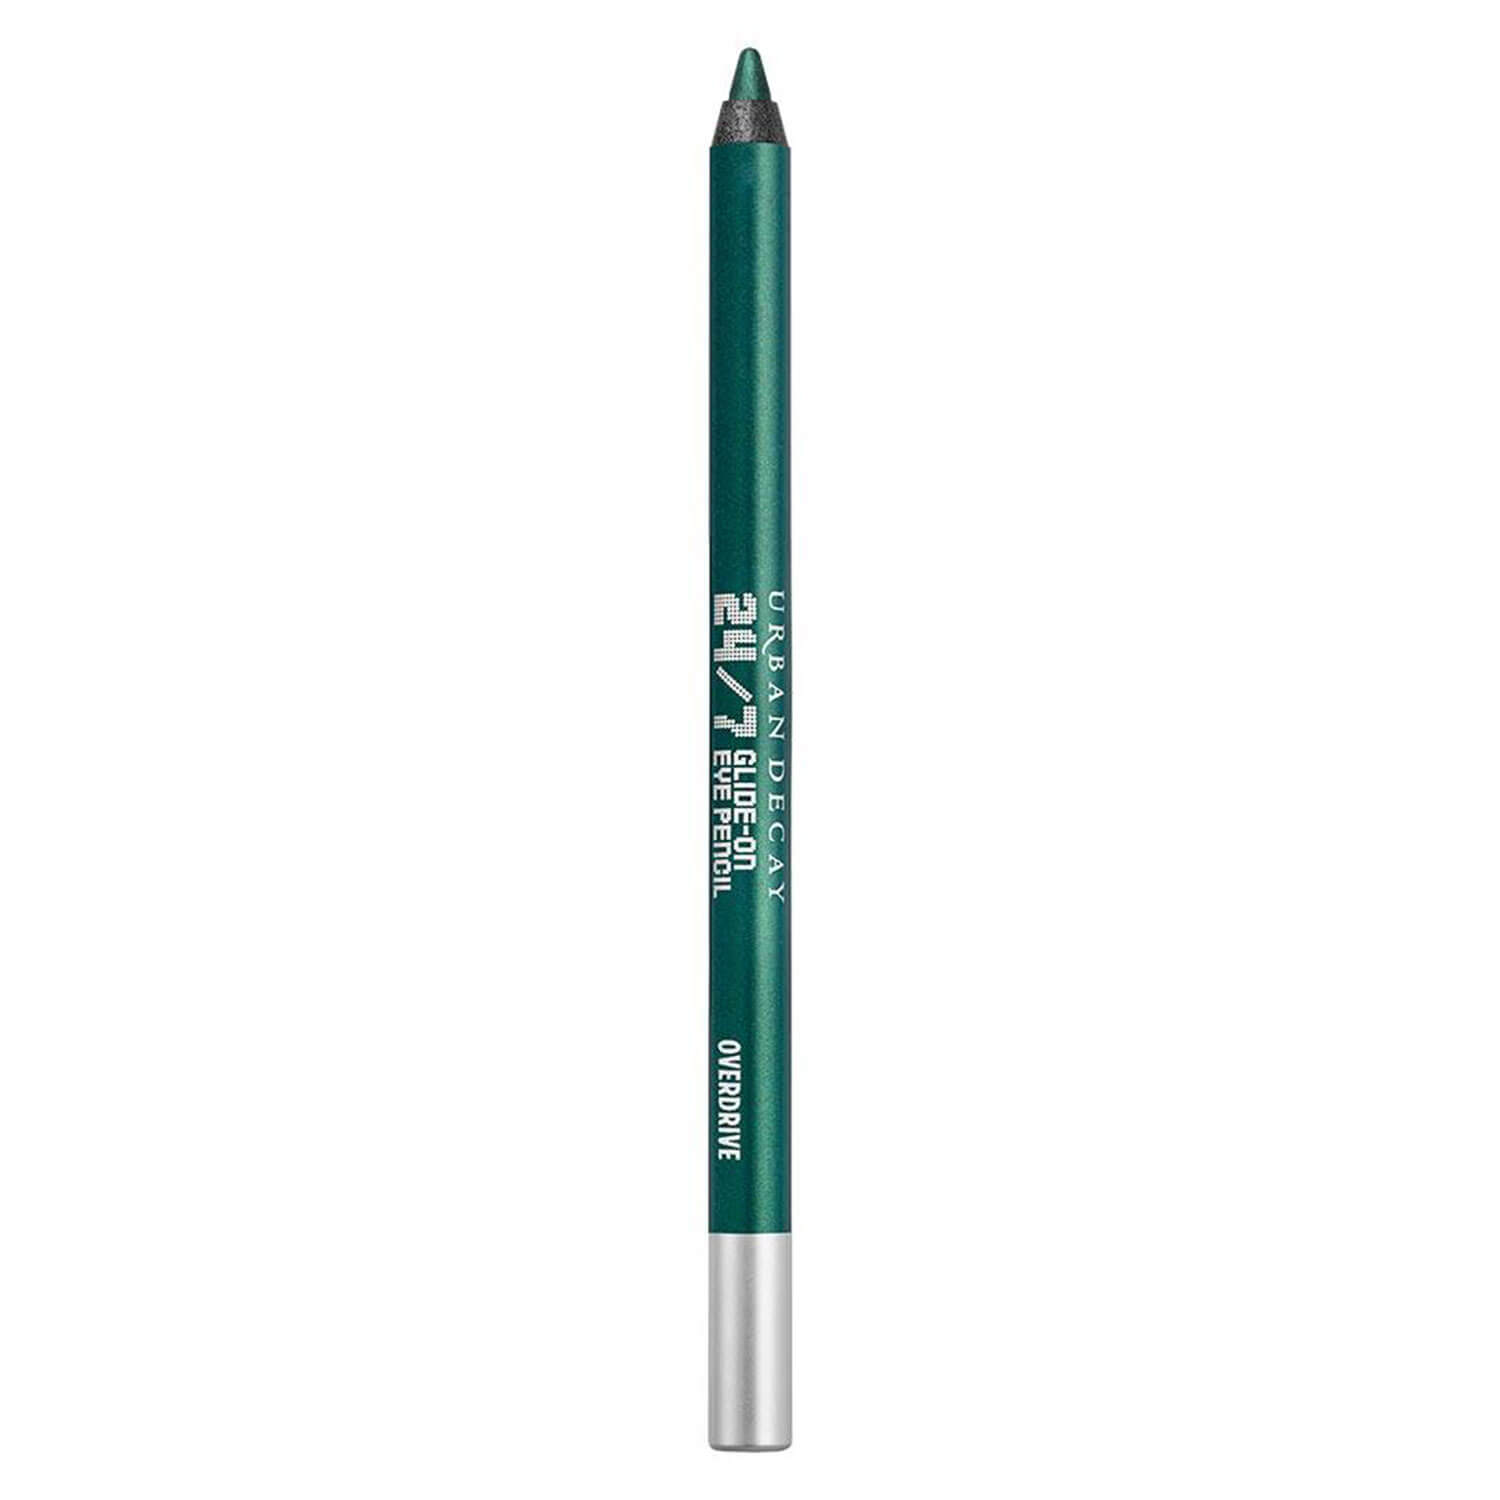 24/7 Glide-On - Eye Pencil Overdrive